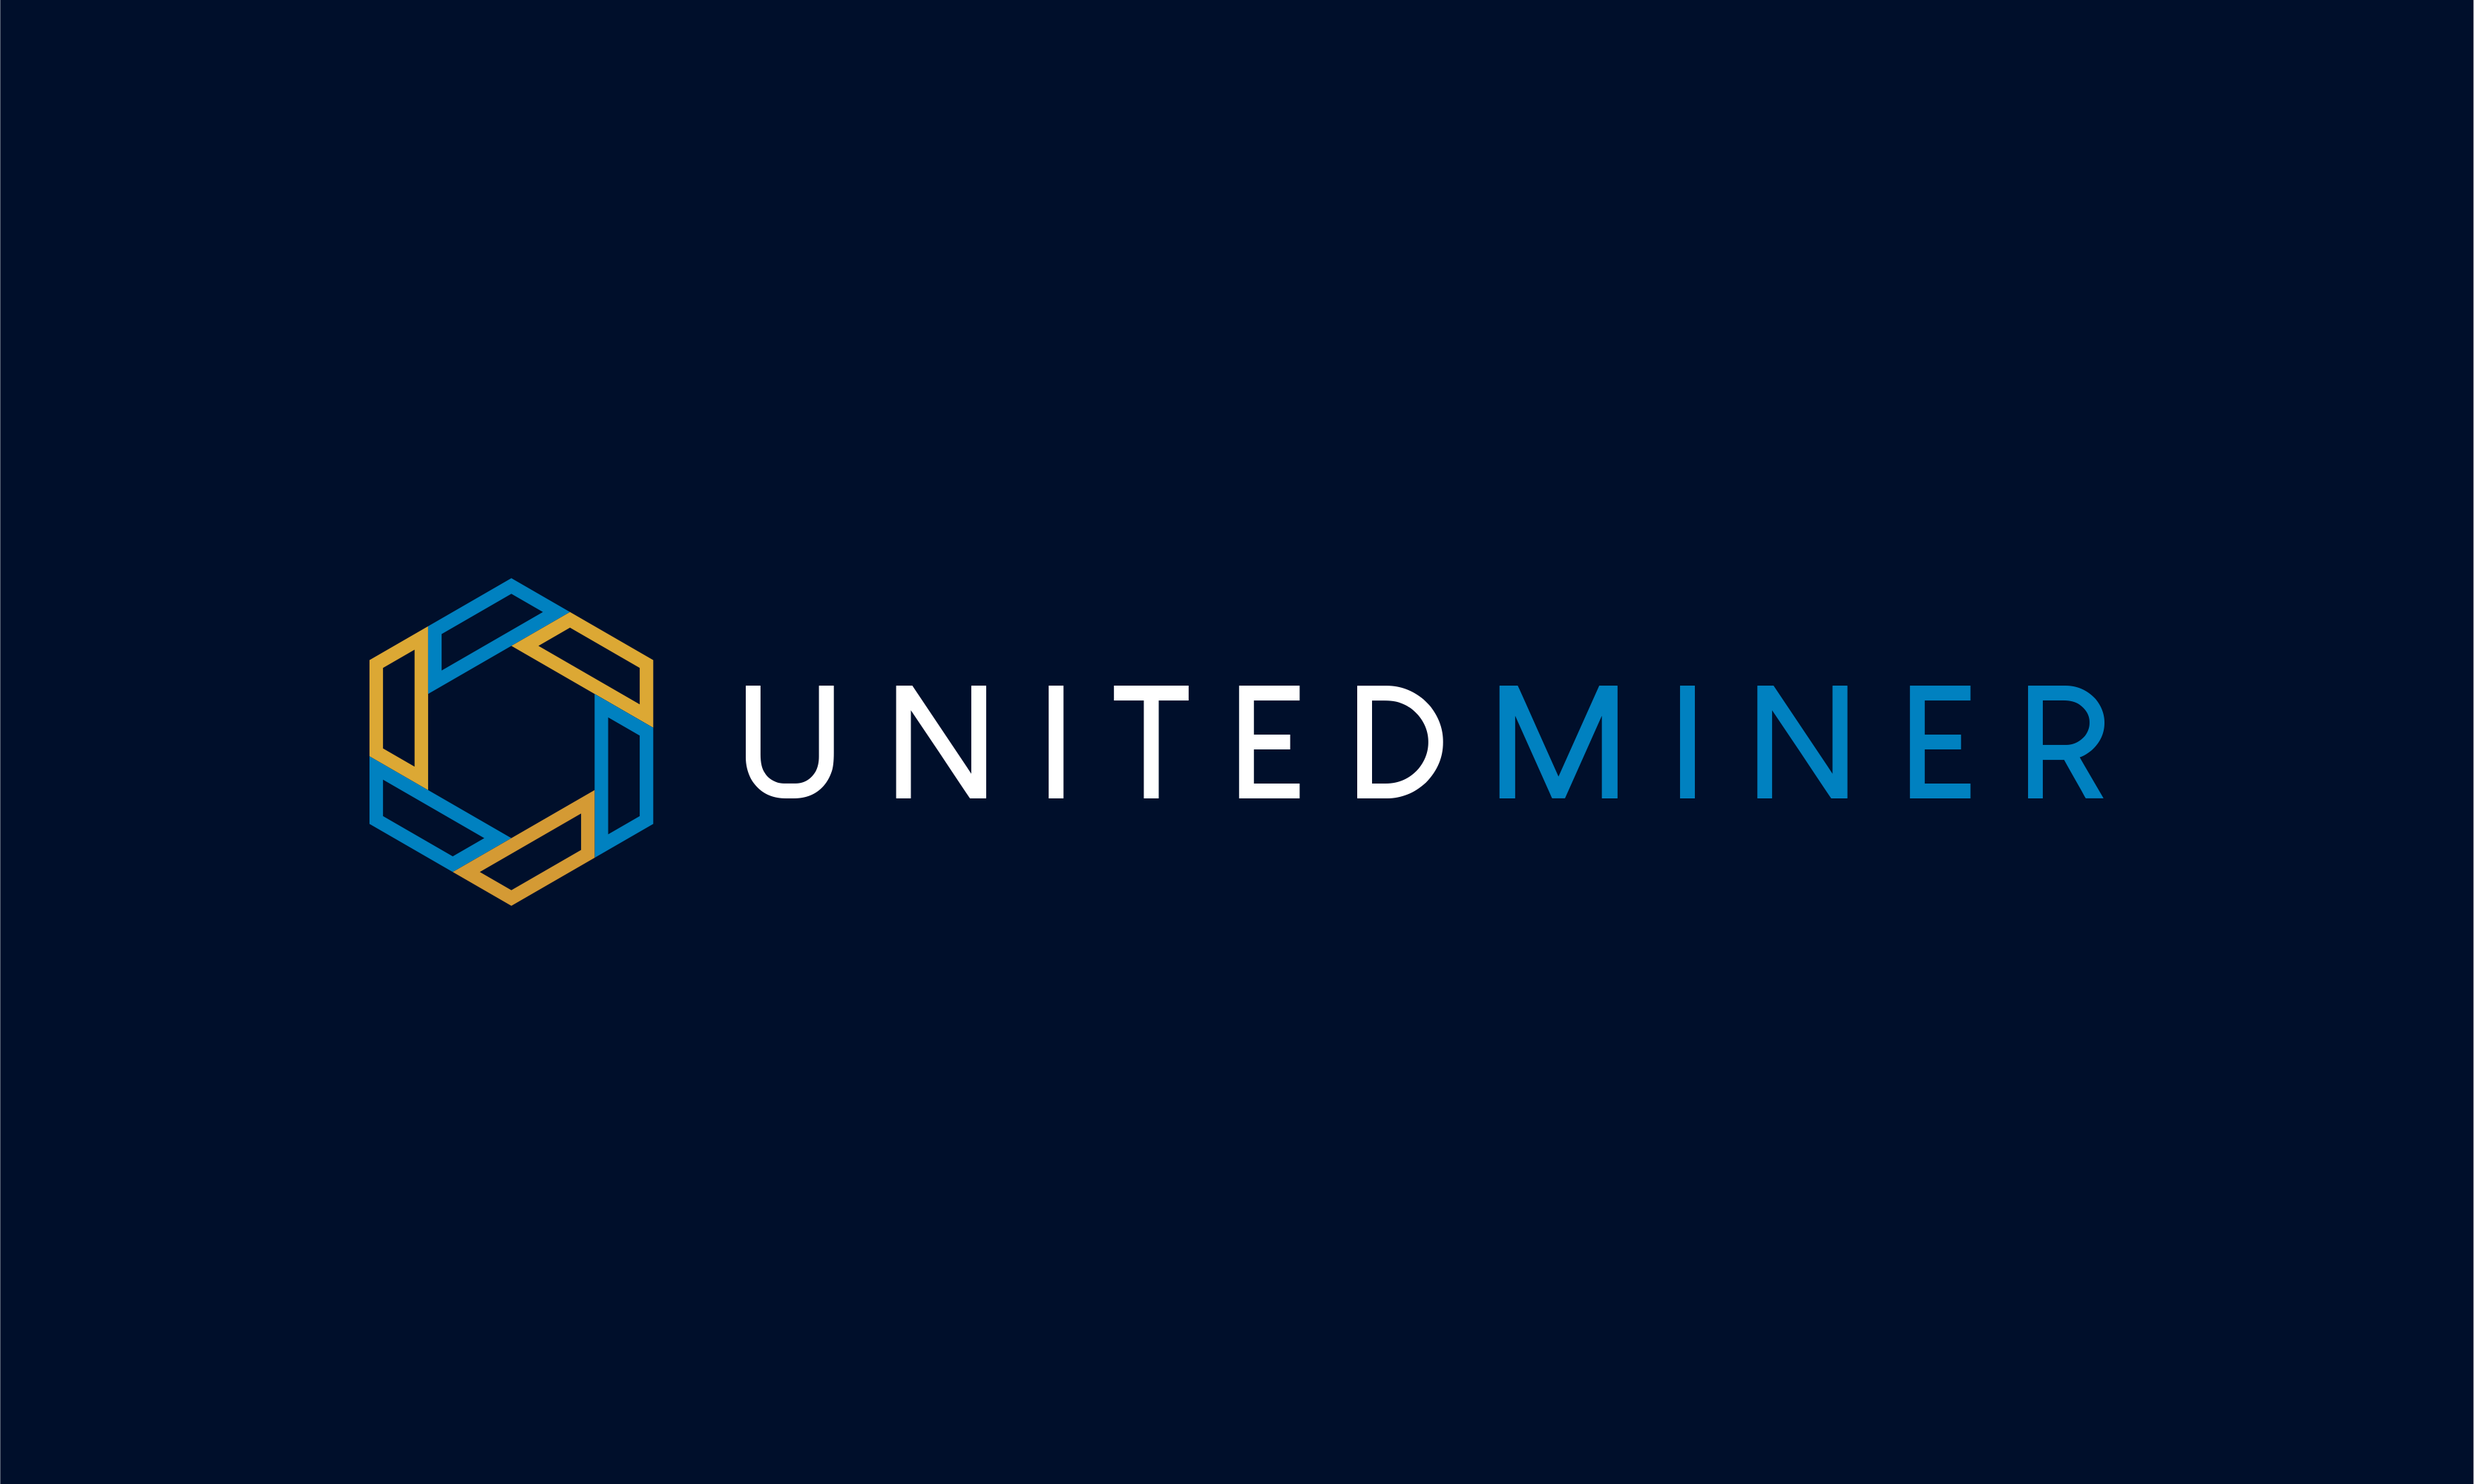 Unitedminer - Mining business name for sale